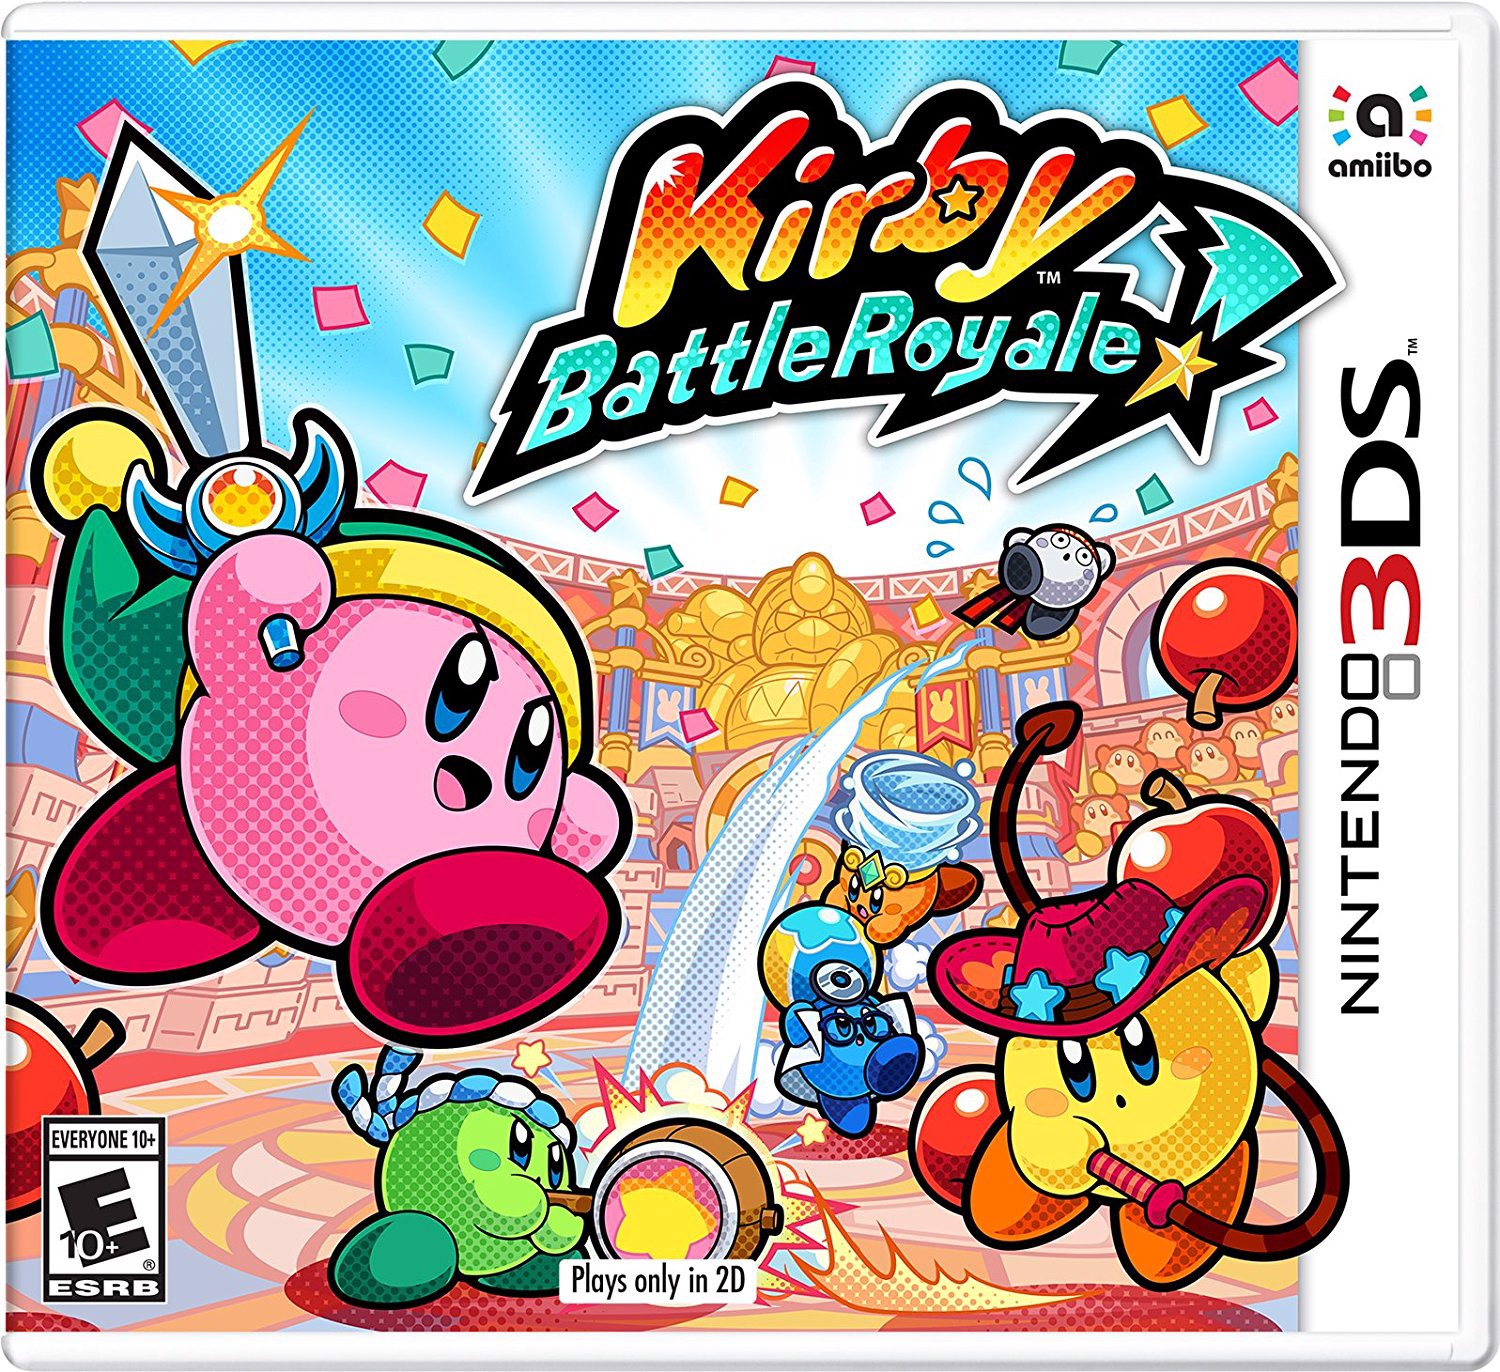 237 - Kirby: Battle Royale